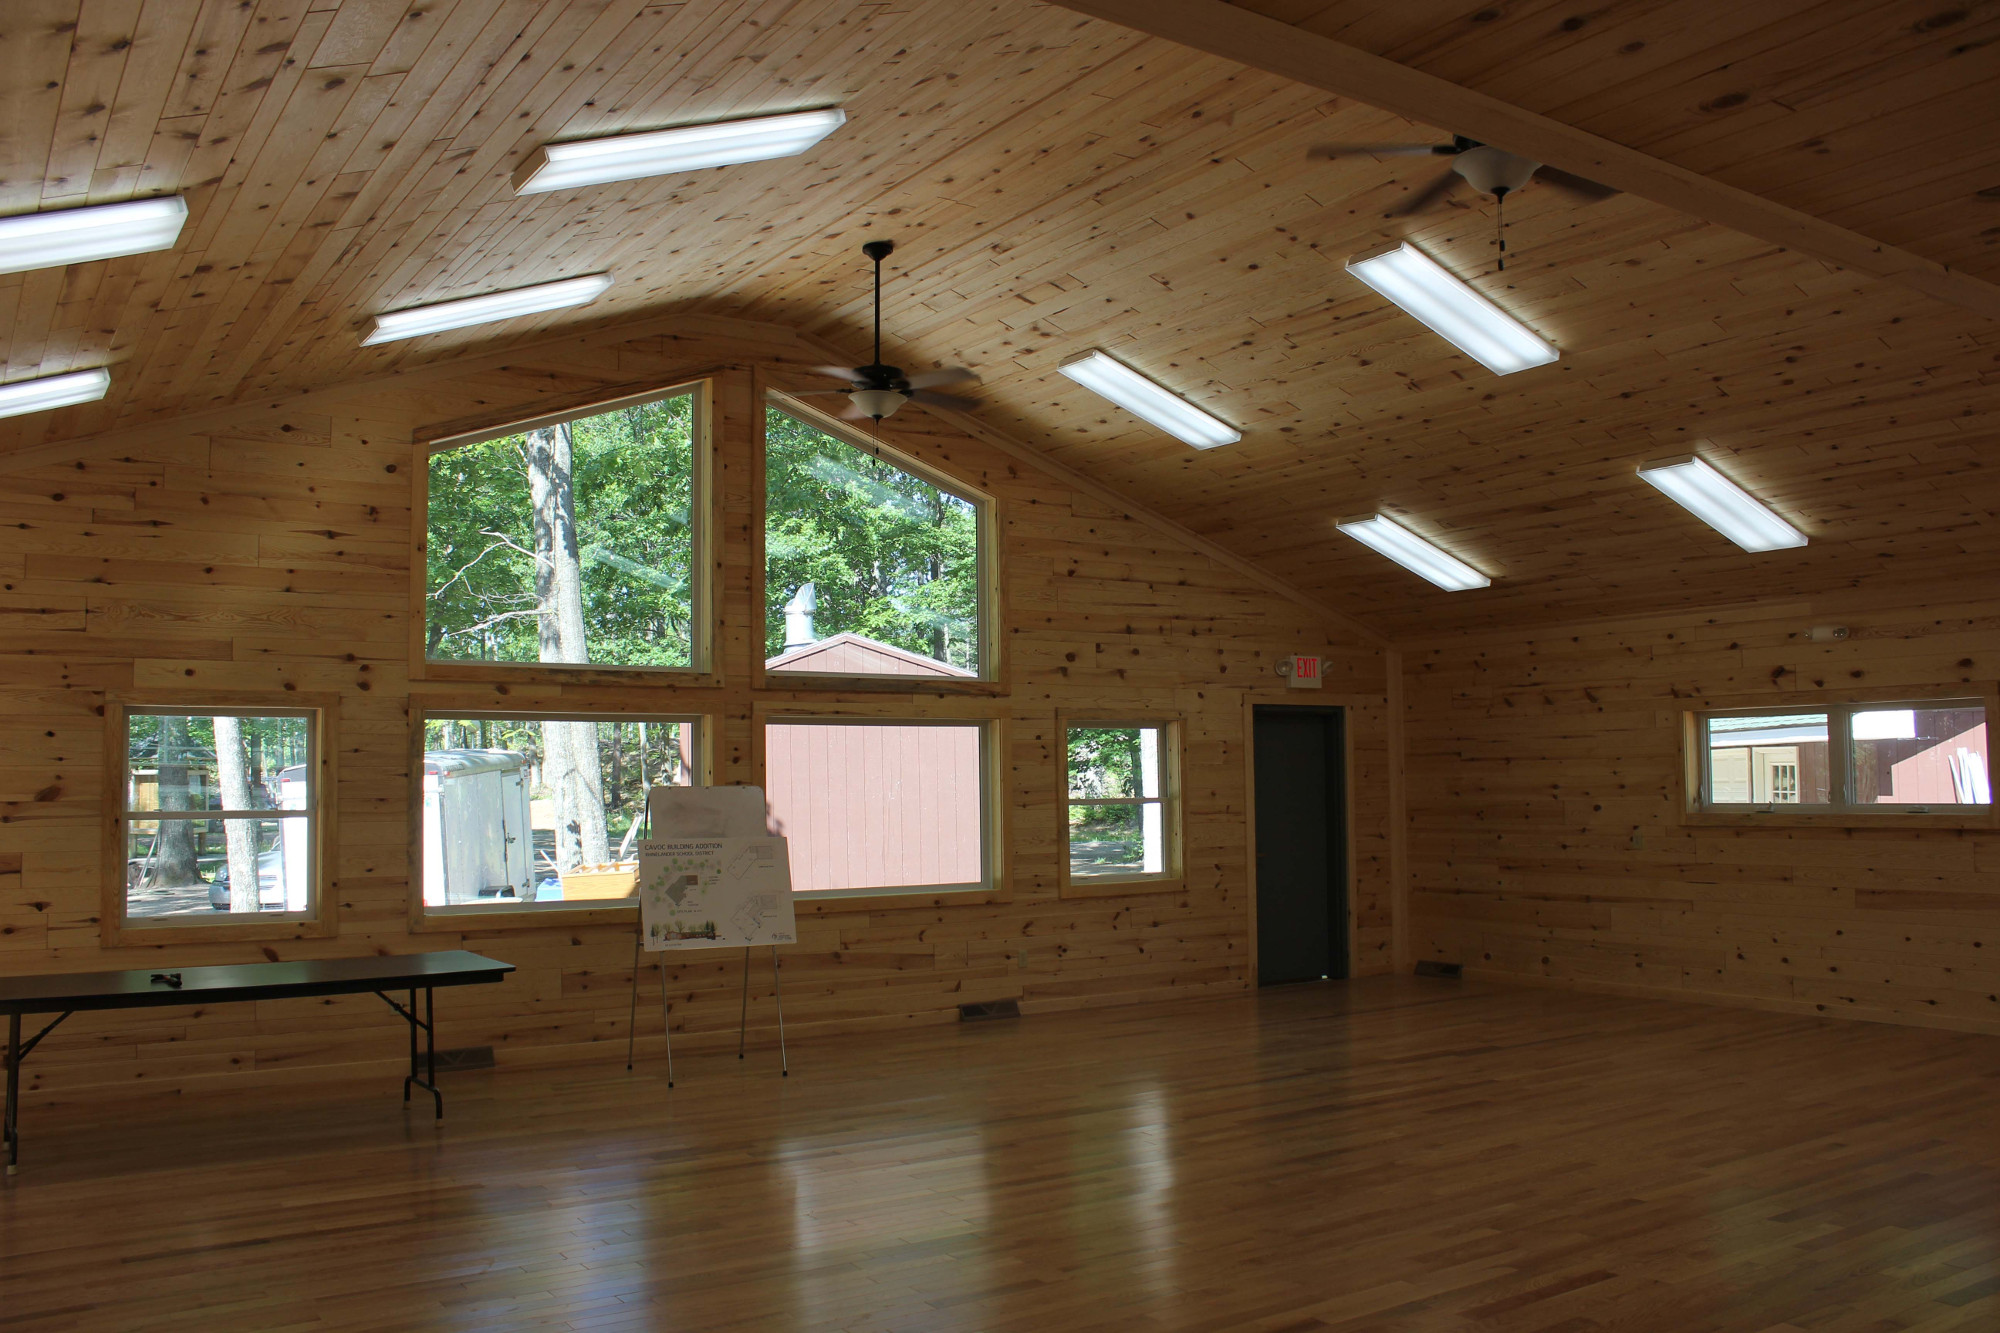 Rhinelander-School-Forest-Education-Building-interior-2000x1333.jpg